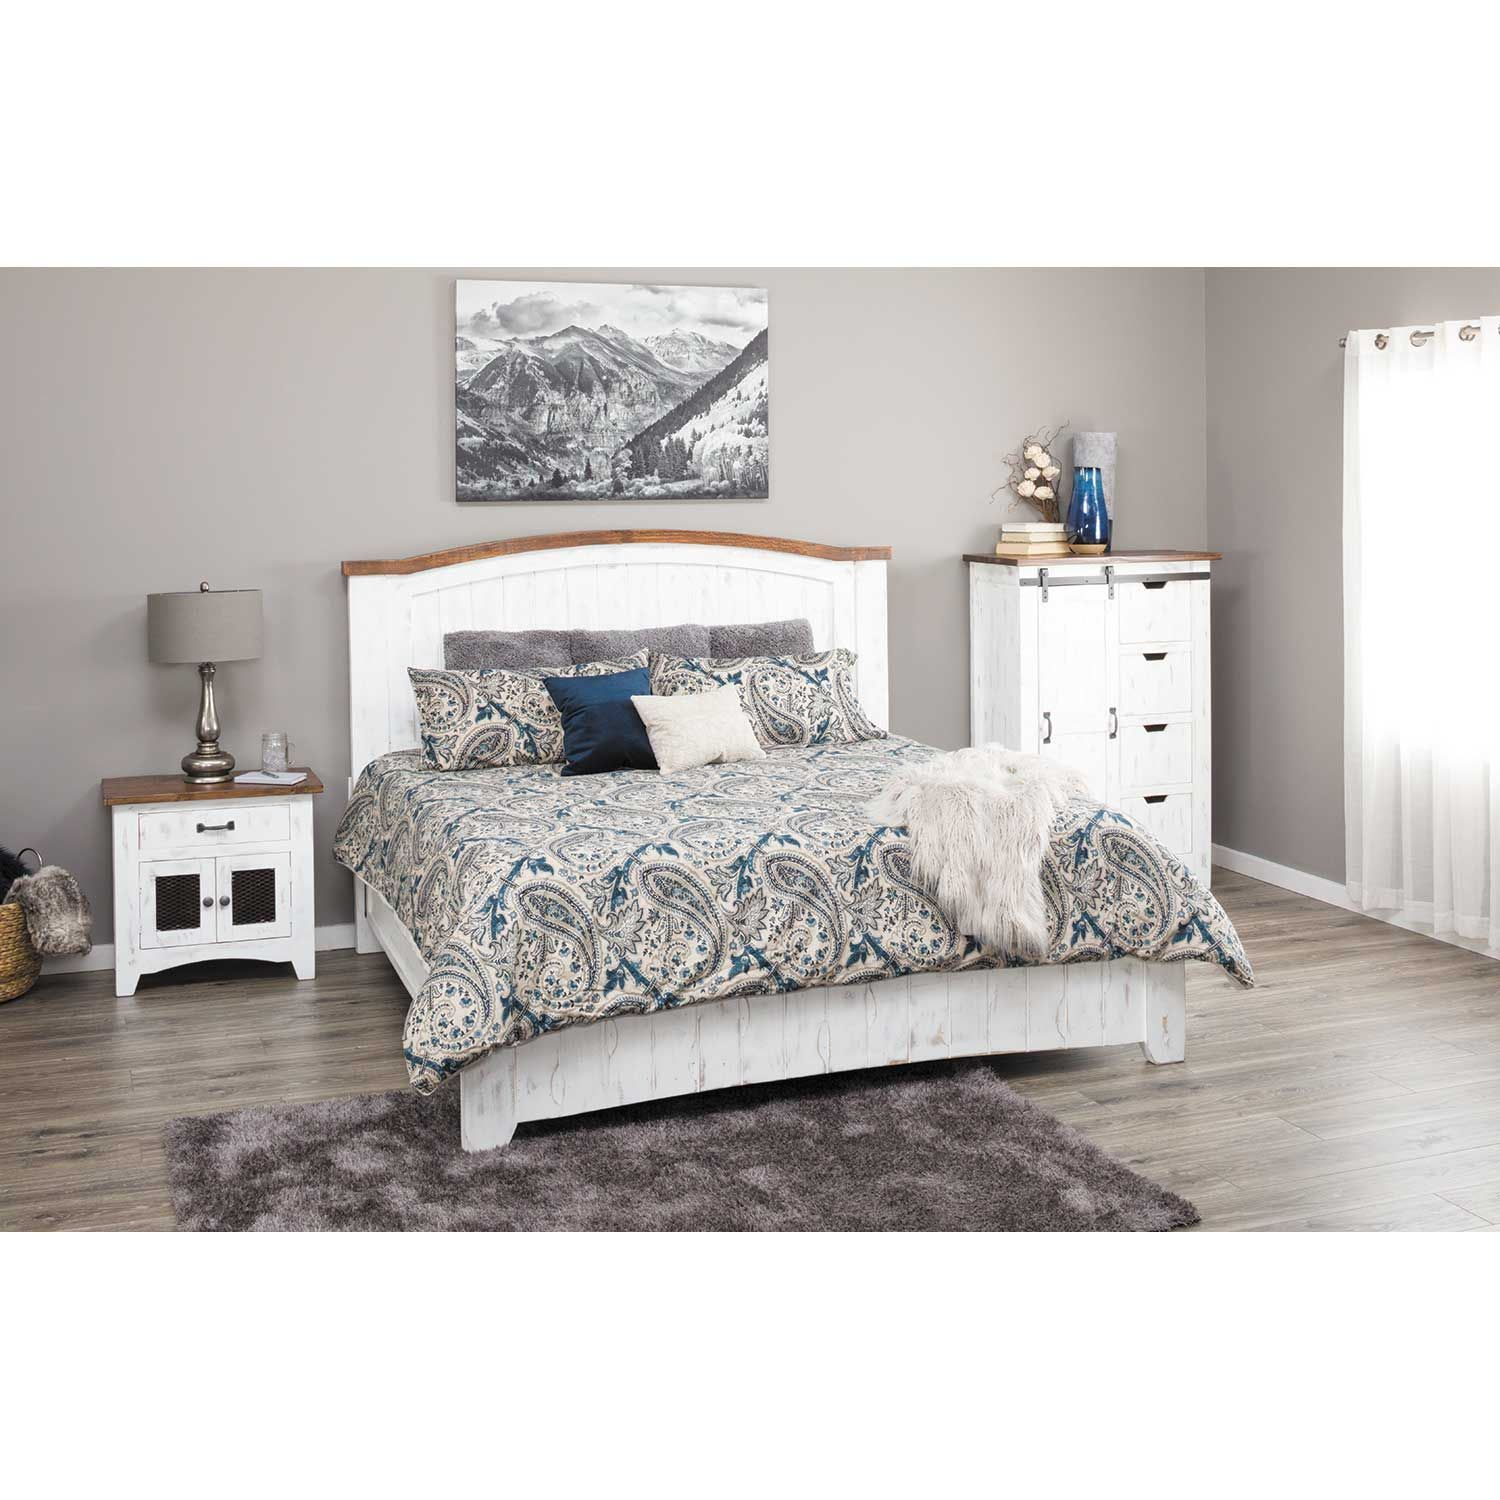 Picture of Pueblo White Queen Bed